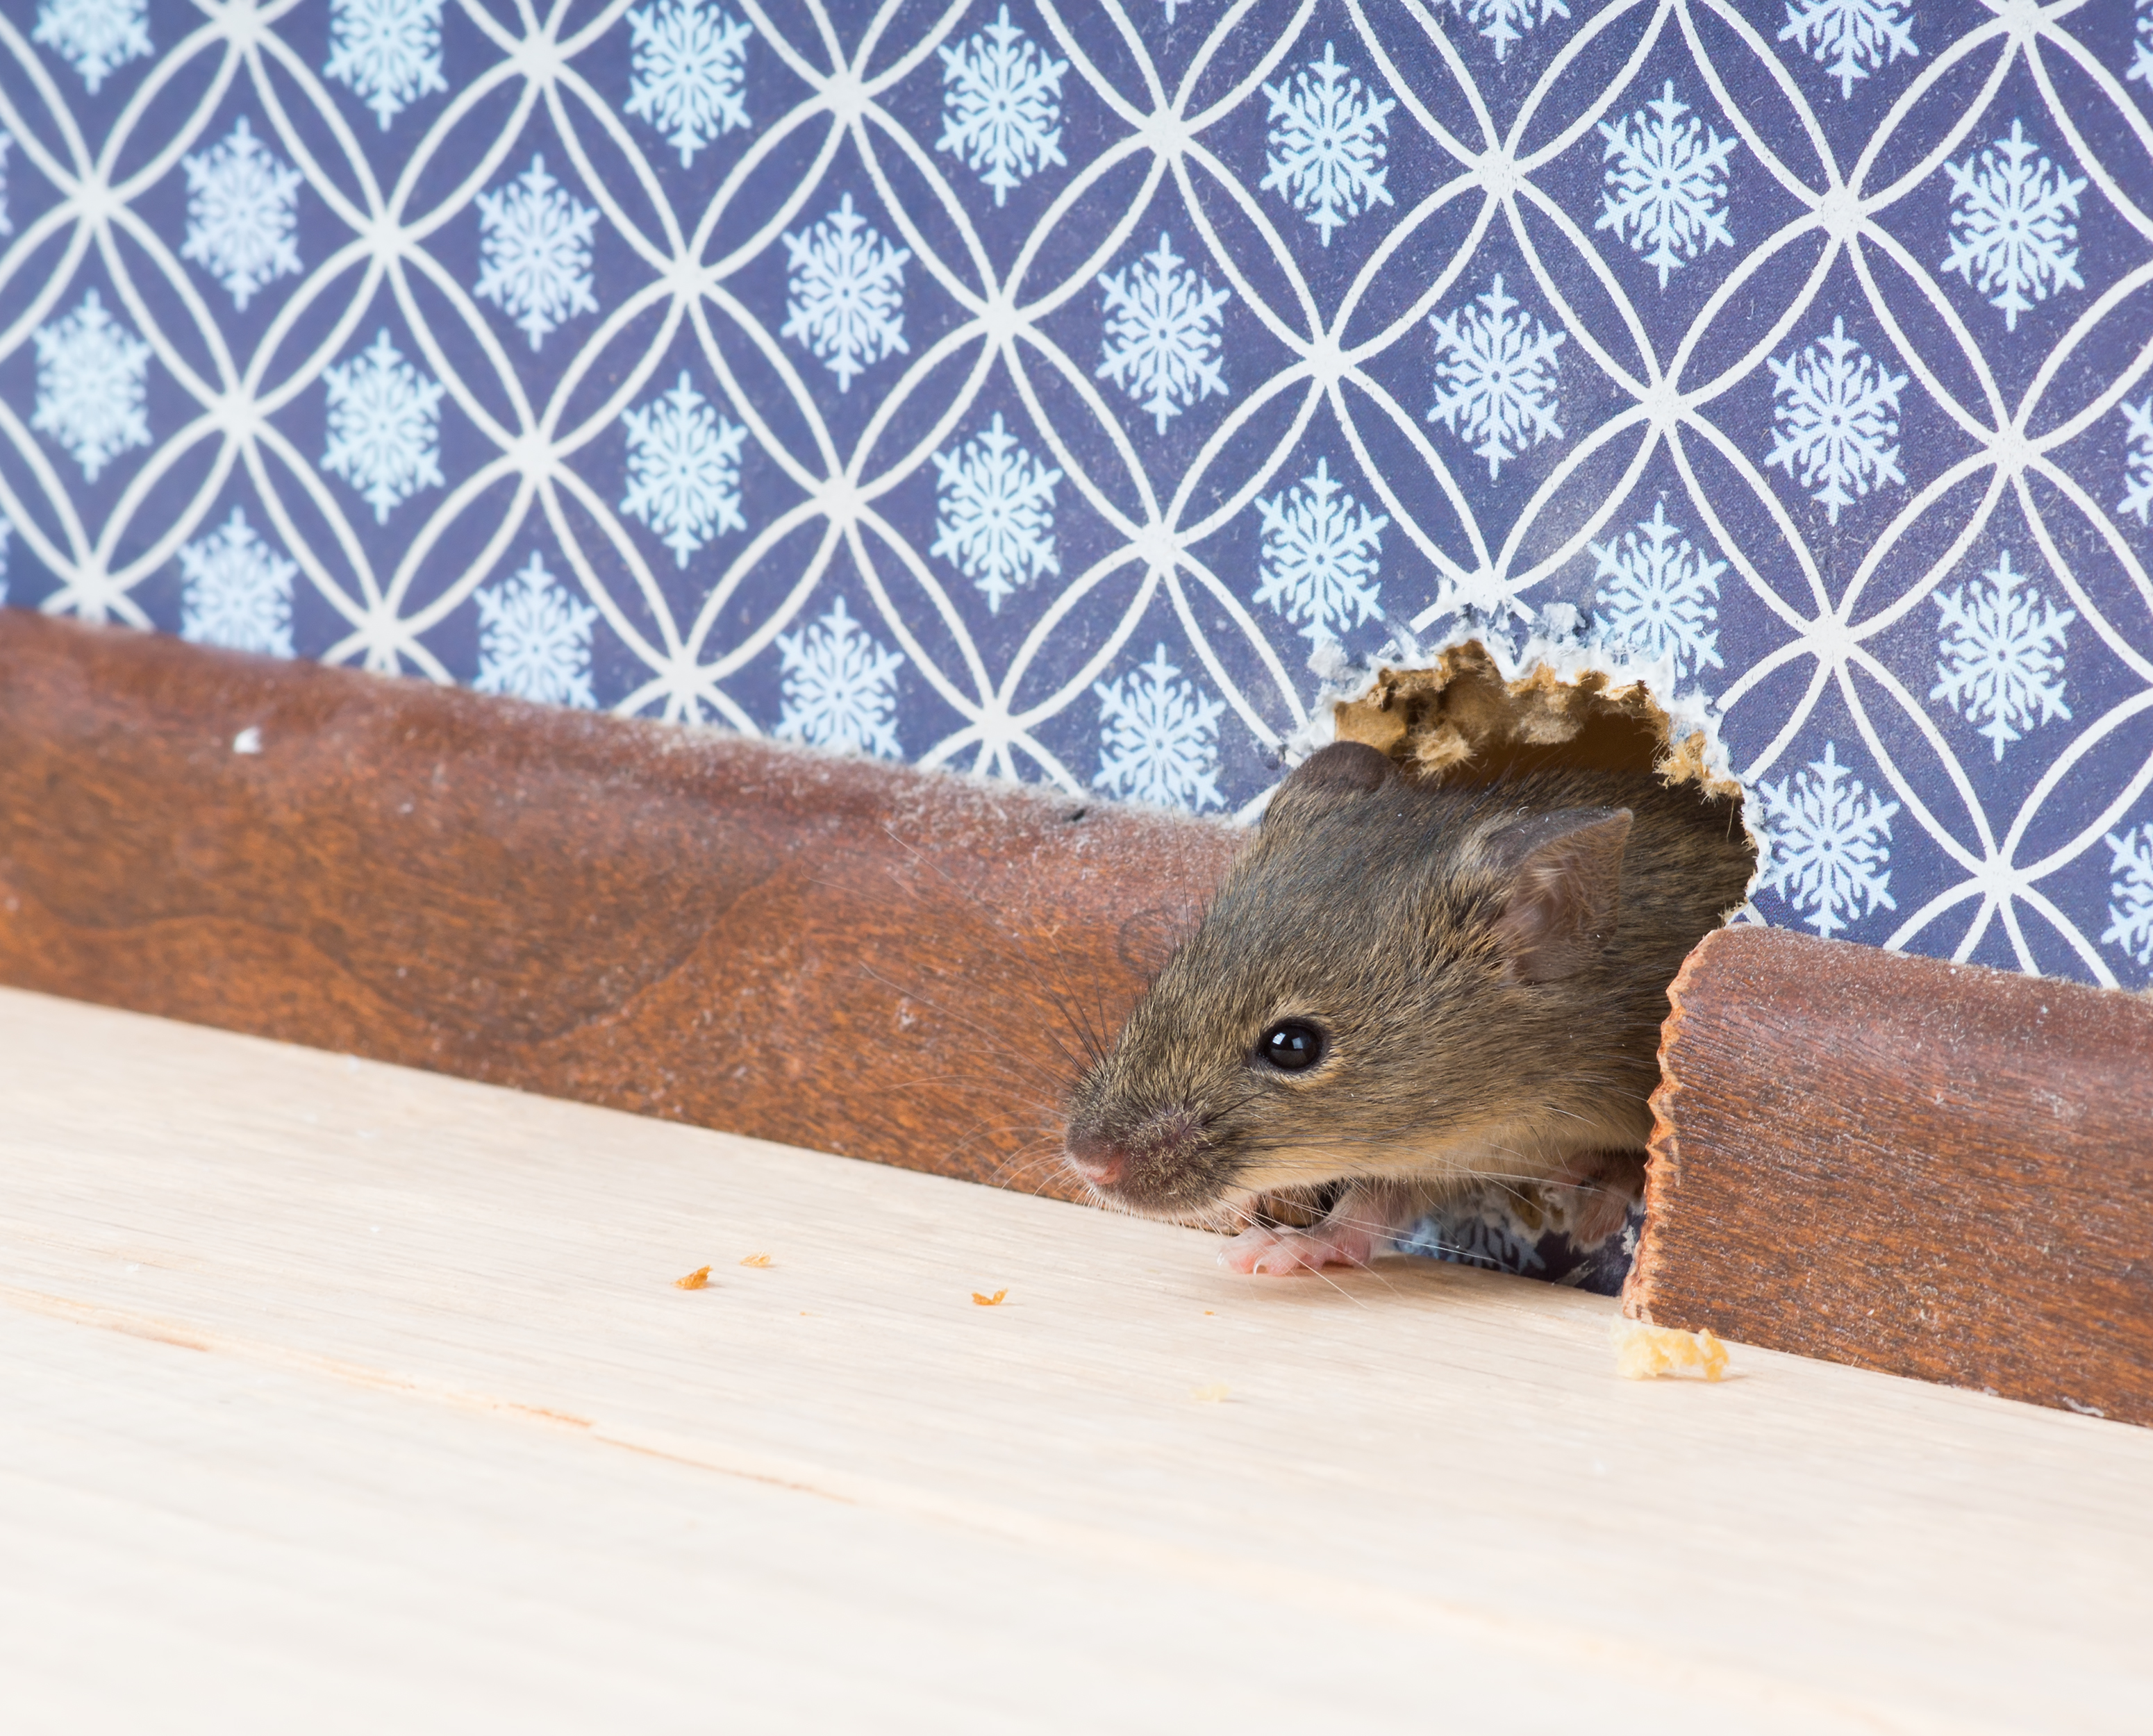 How to Get Rid of Mice in the Ceiling | Home Guides | SF Gate